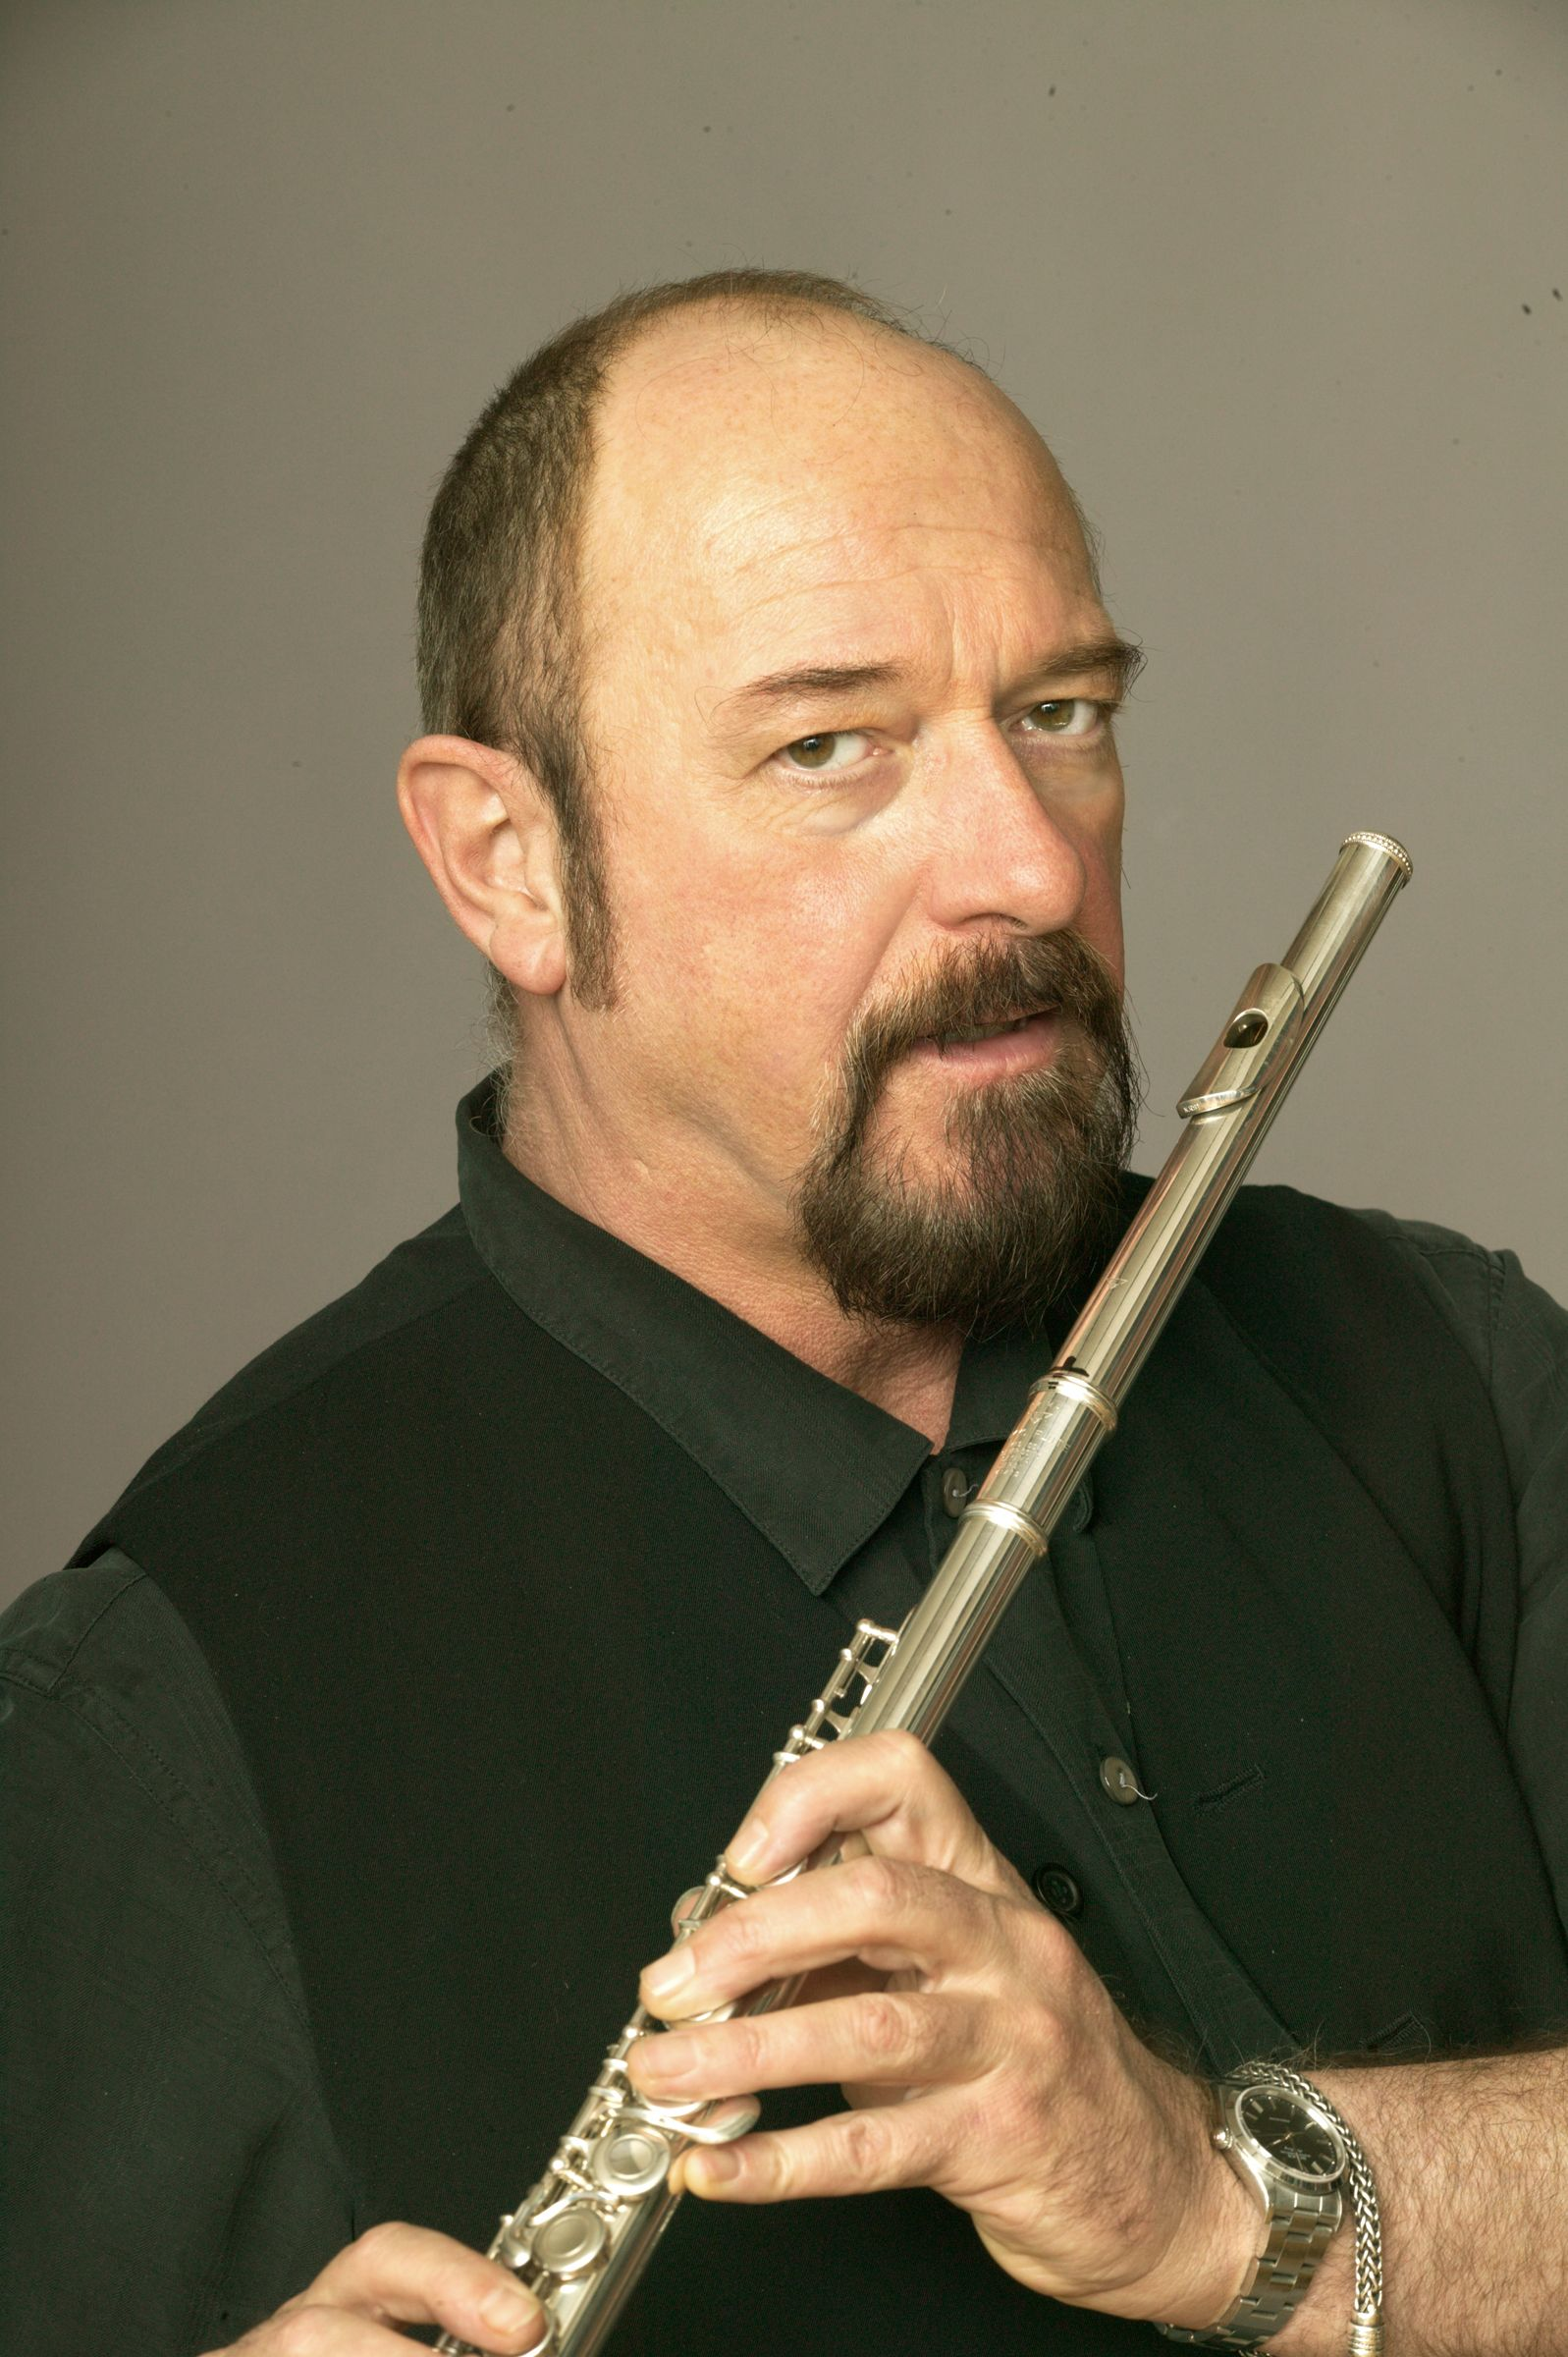 Ian_Anderson_flute LOVE HIM and Jethro Tull, the greatest British band ever